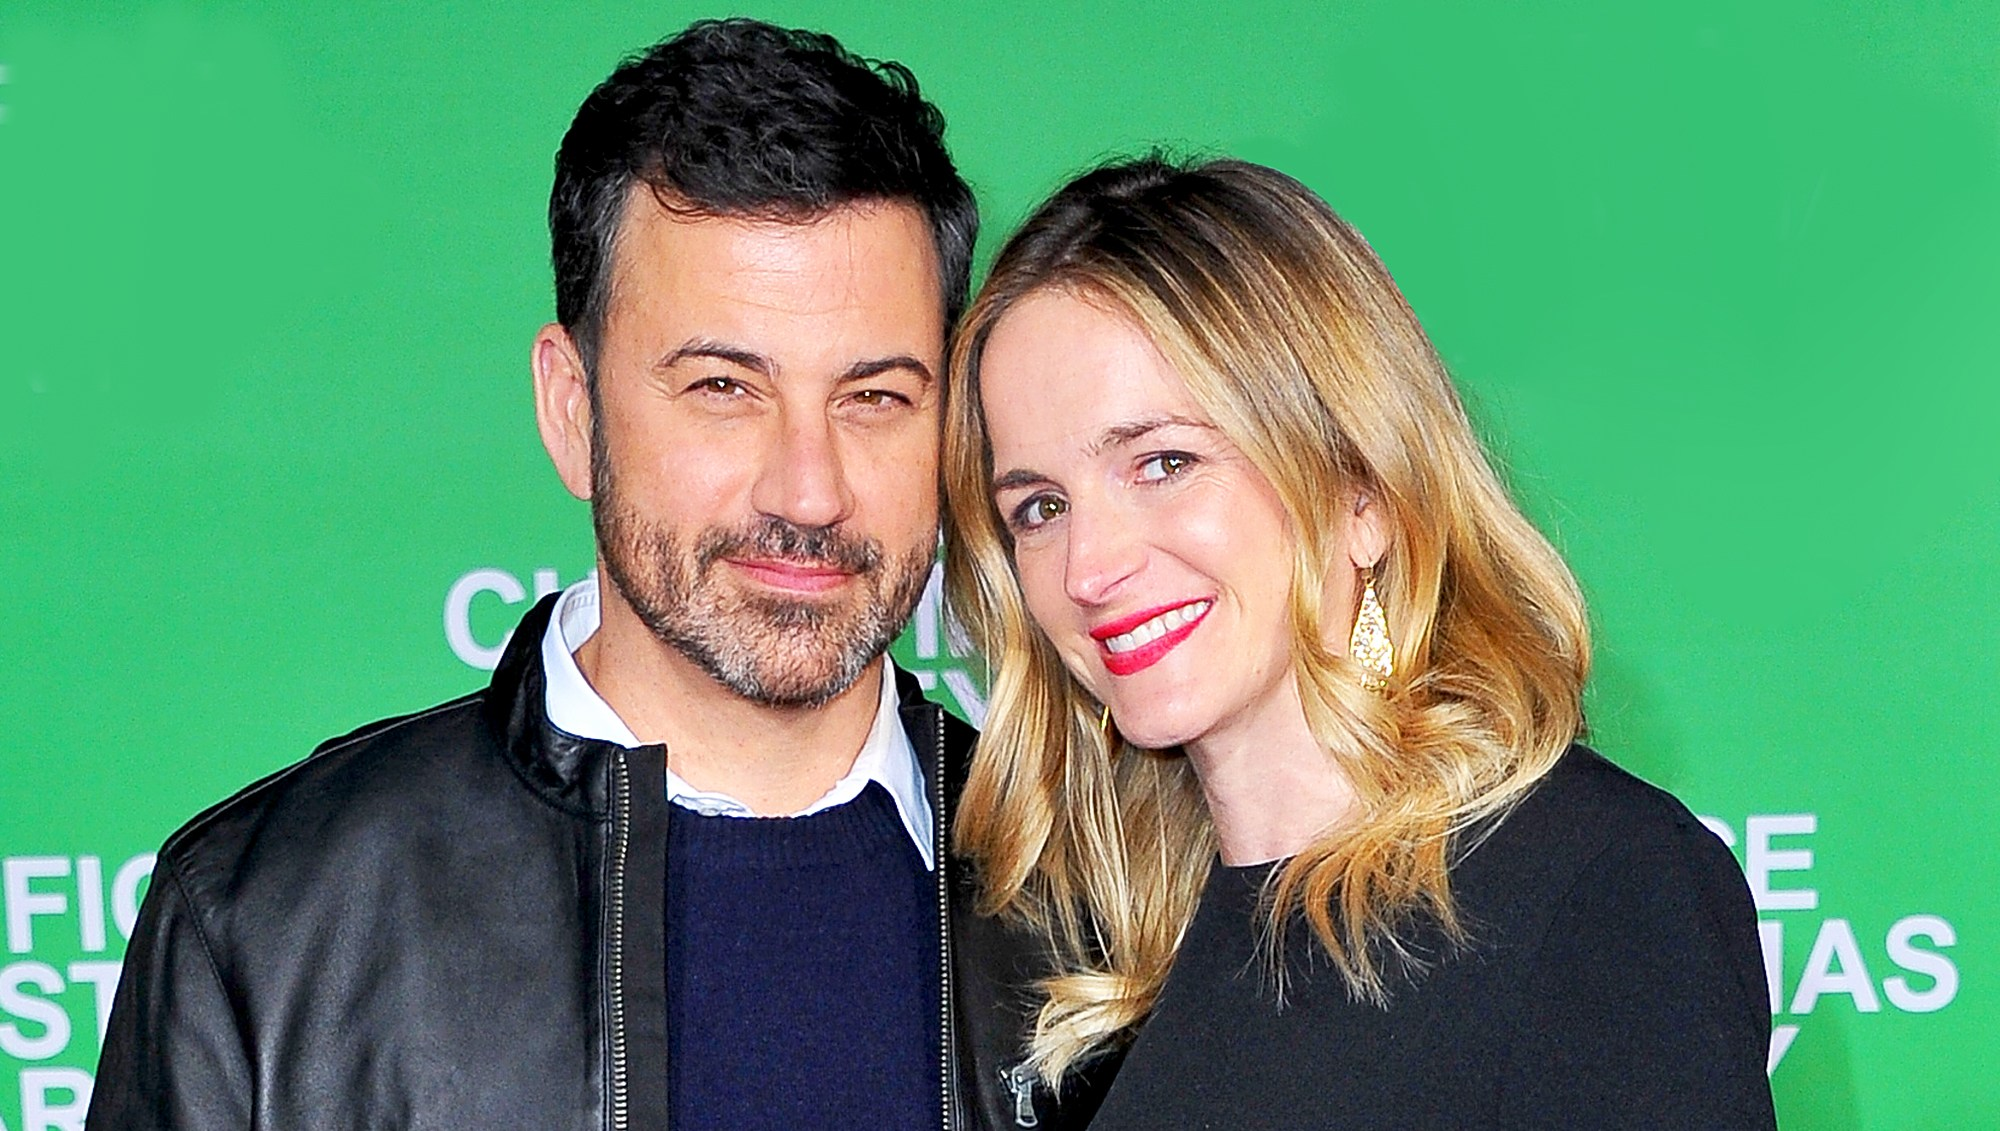 """Jimmy Kimmel and wife Molly McNearney attend the premiere of """"Office Christmas Party"""" at Regency Village Theatre in Westwood, California."""